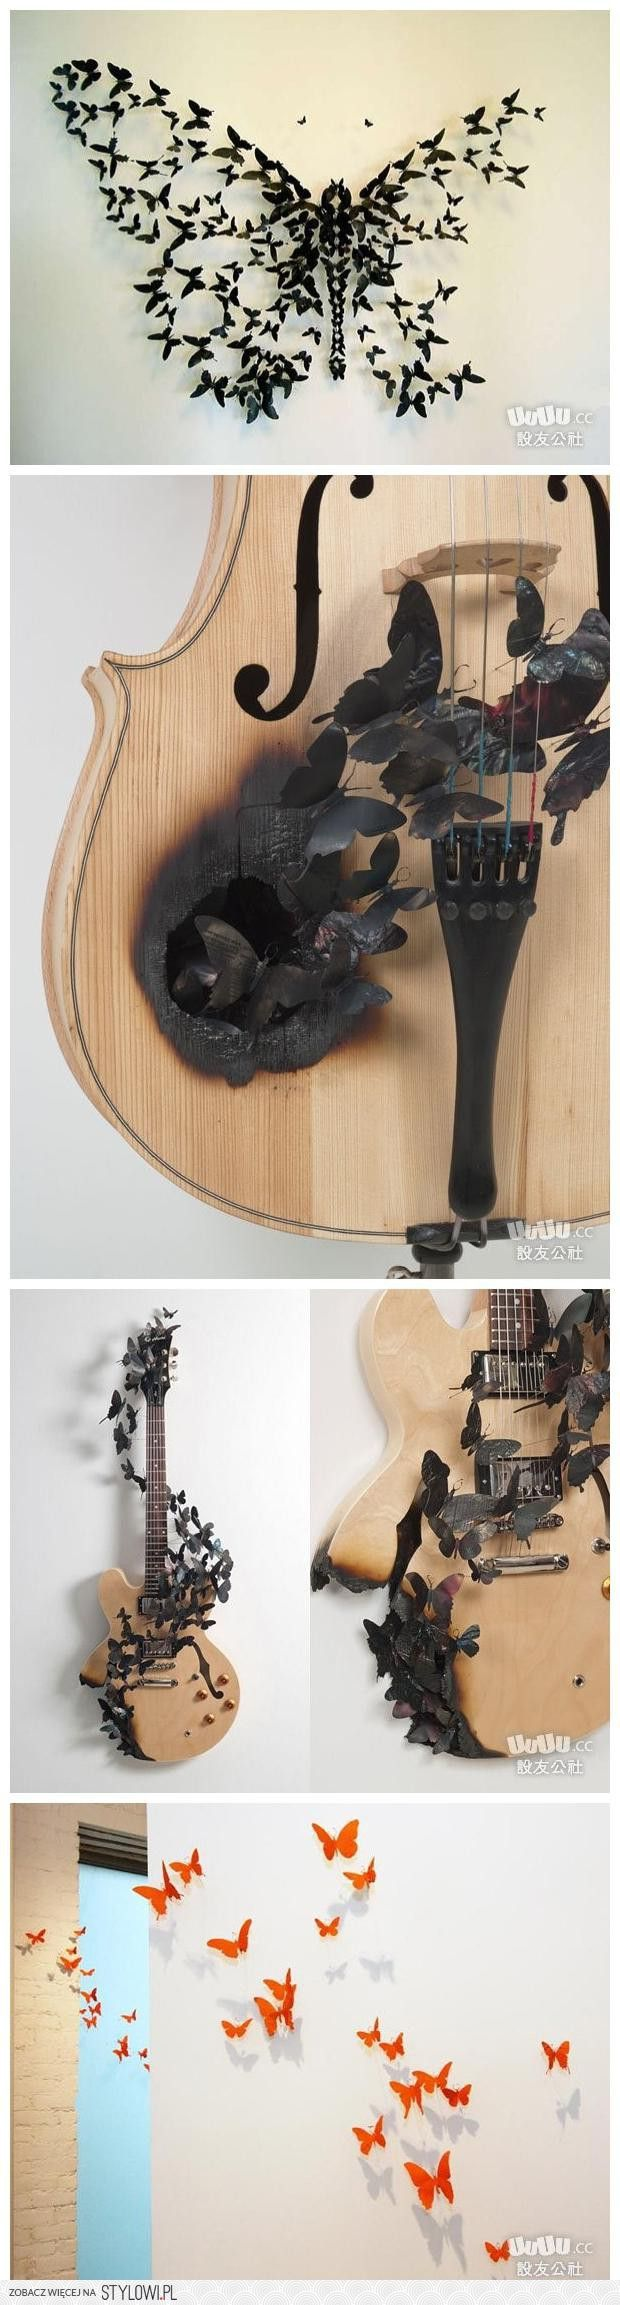 butterfly craft diy ideas. Pretty sure I could never do that to a guitar. But it's beautiful!